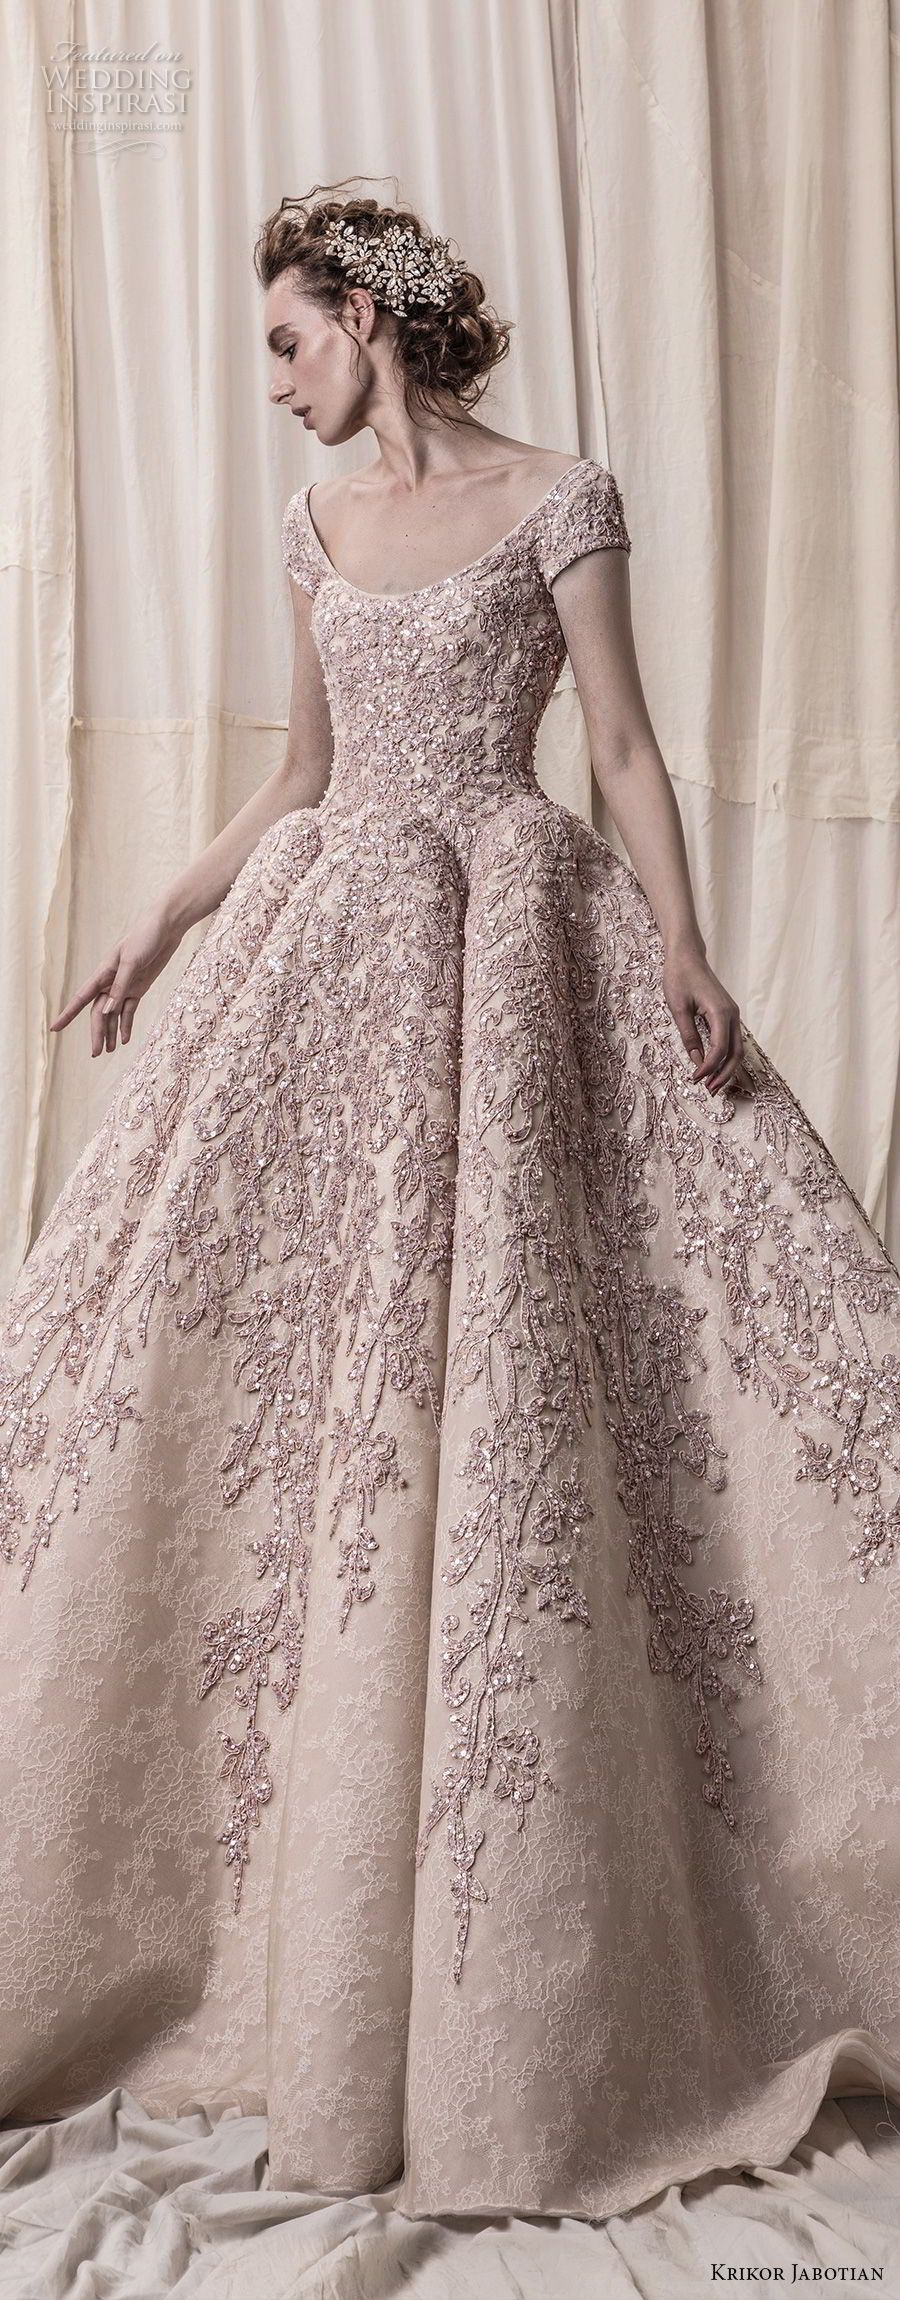 Krikor jabotian wedding elegance pinterest weddings